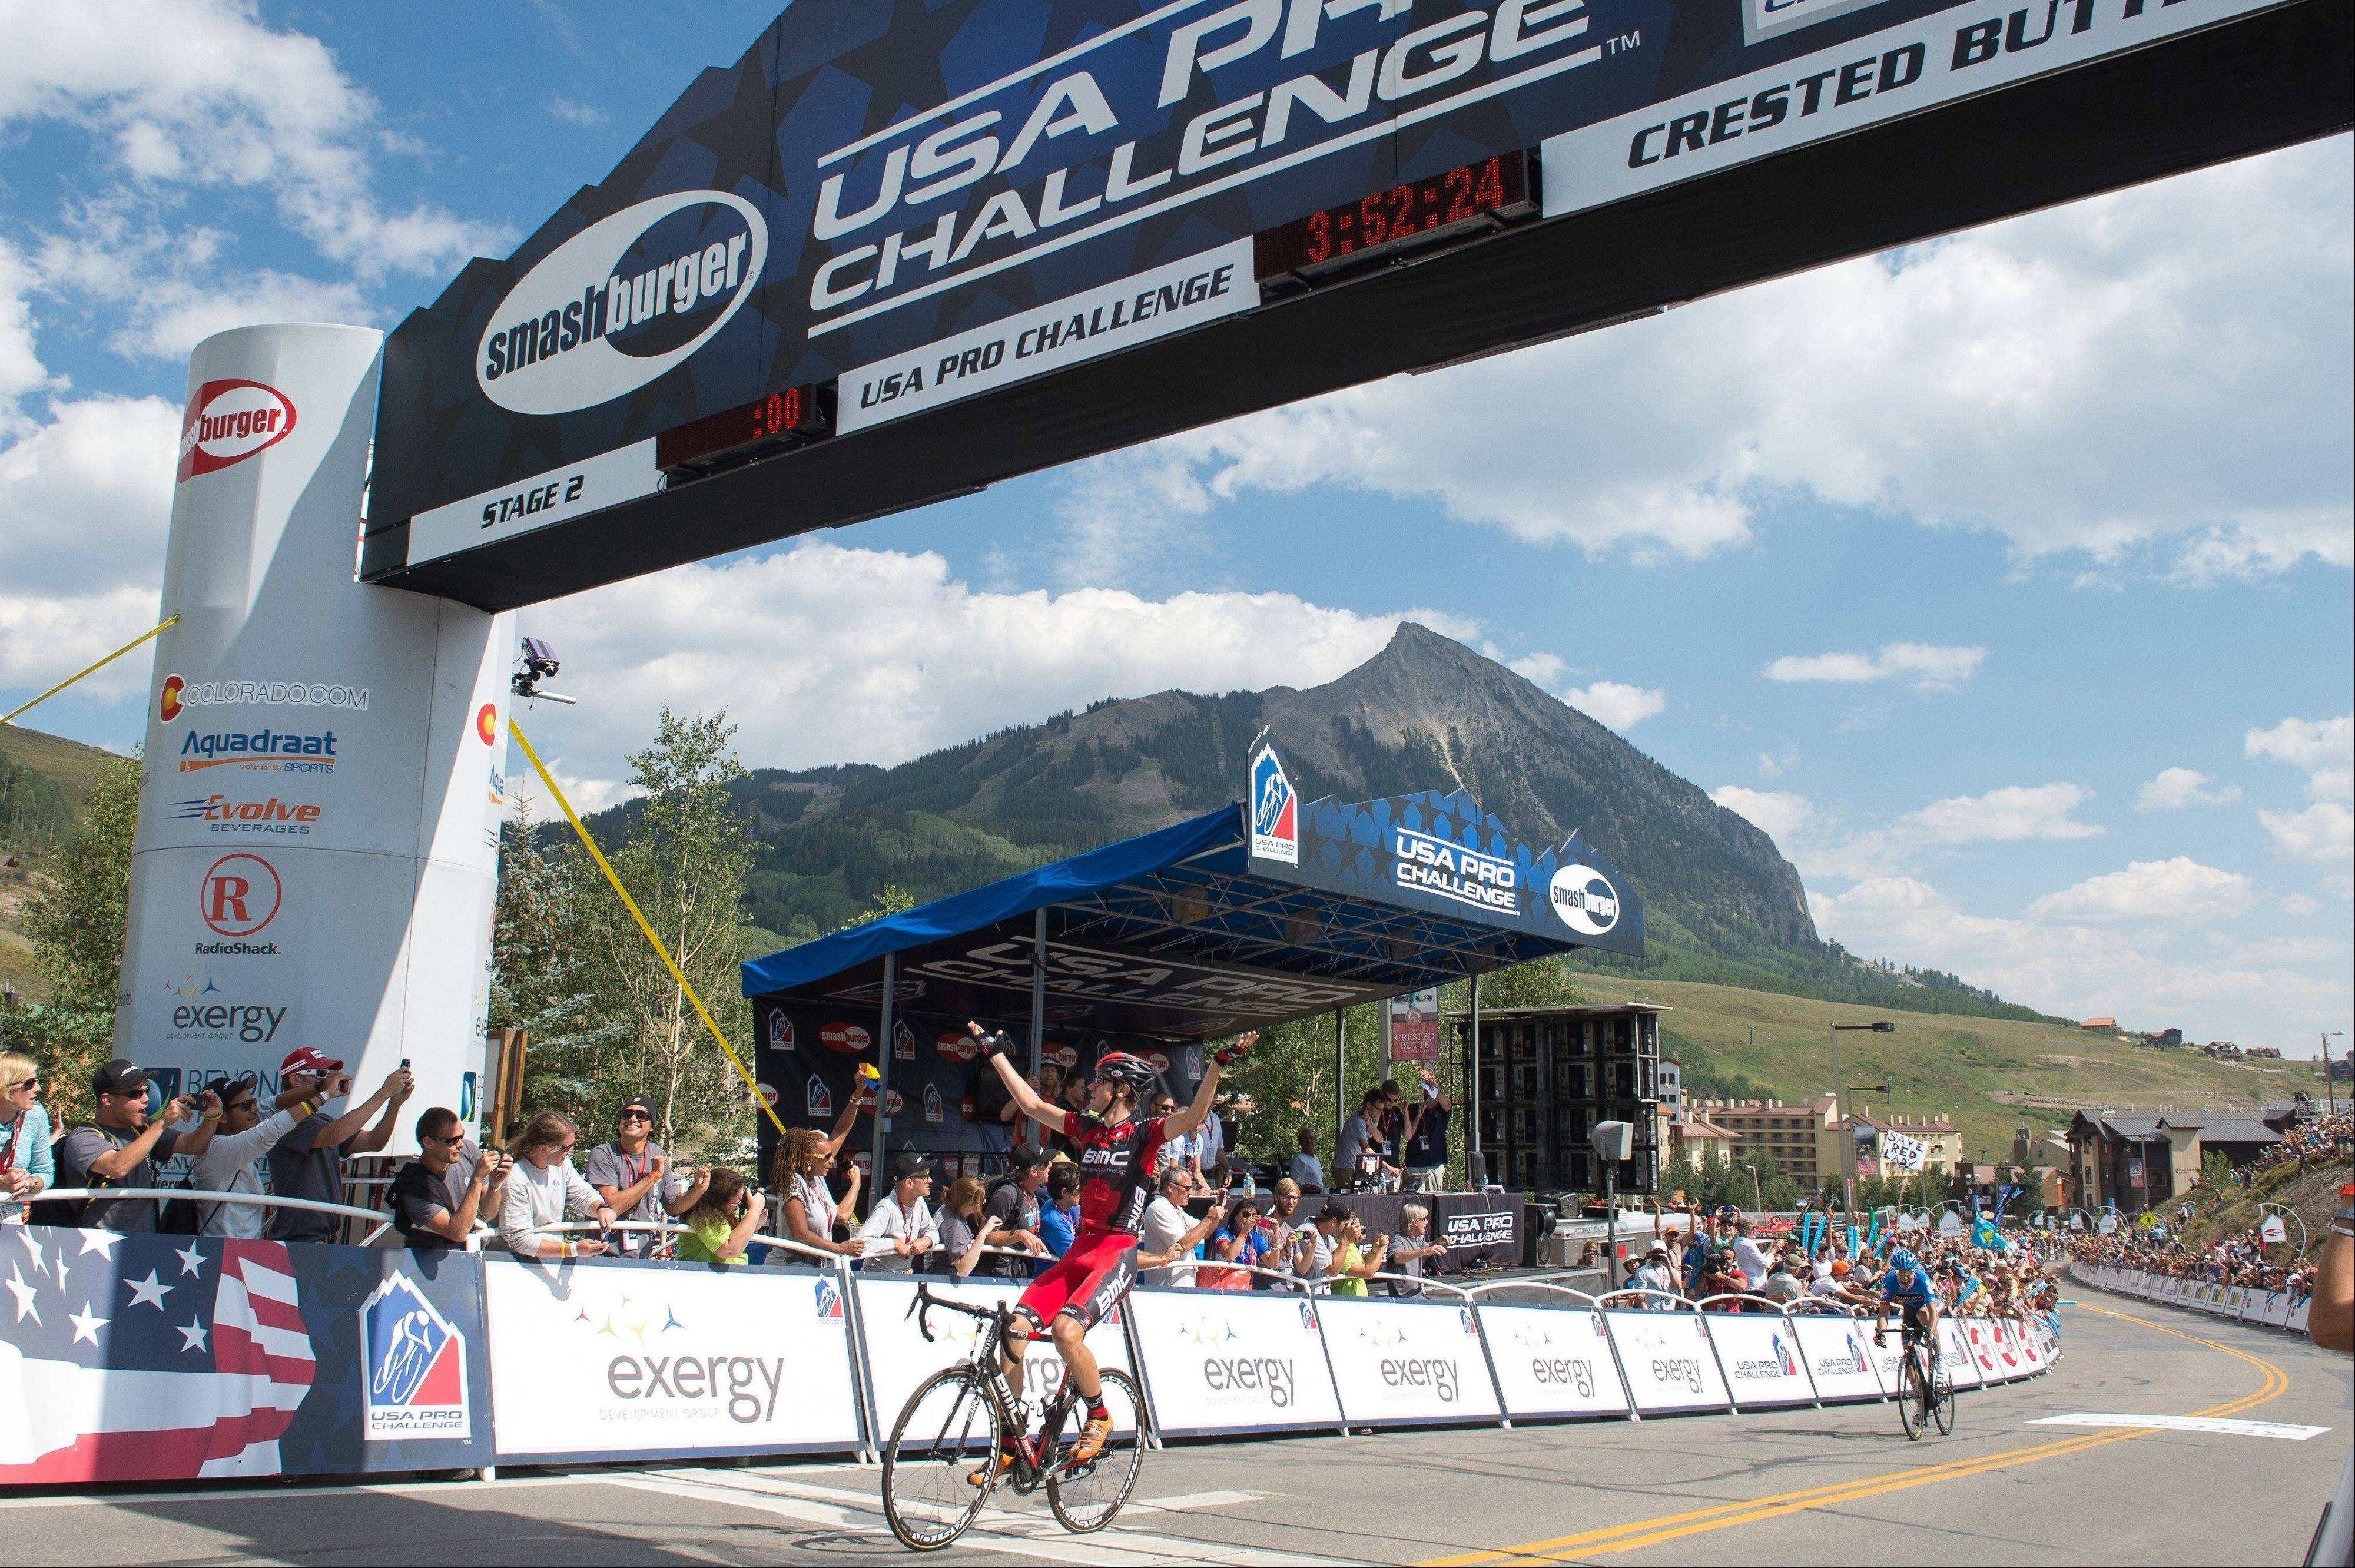 Tejay Van Garderen of the United States crosses the finish line Tuesday in Mount Crested Butte, Colo., winning the second stage of the USA Pro Cycling Challenge.